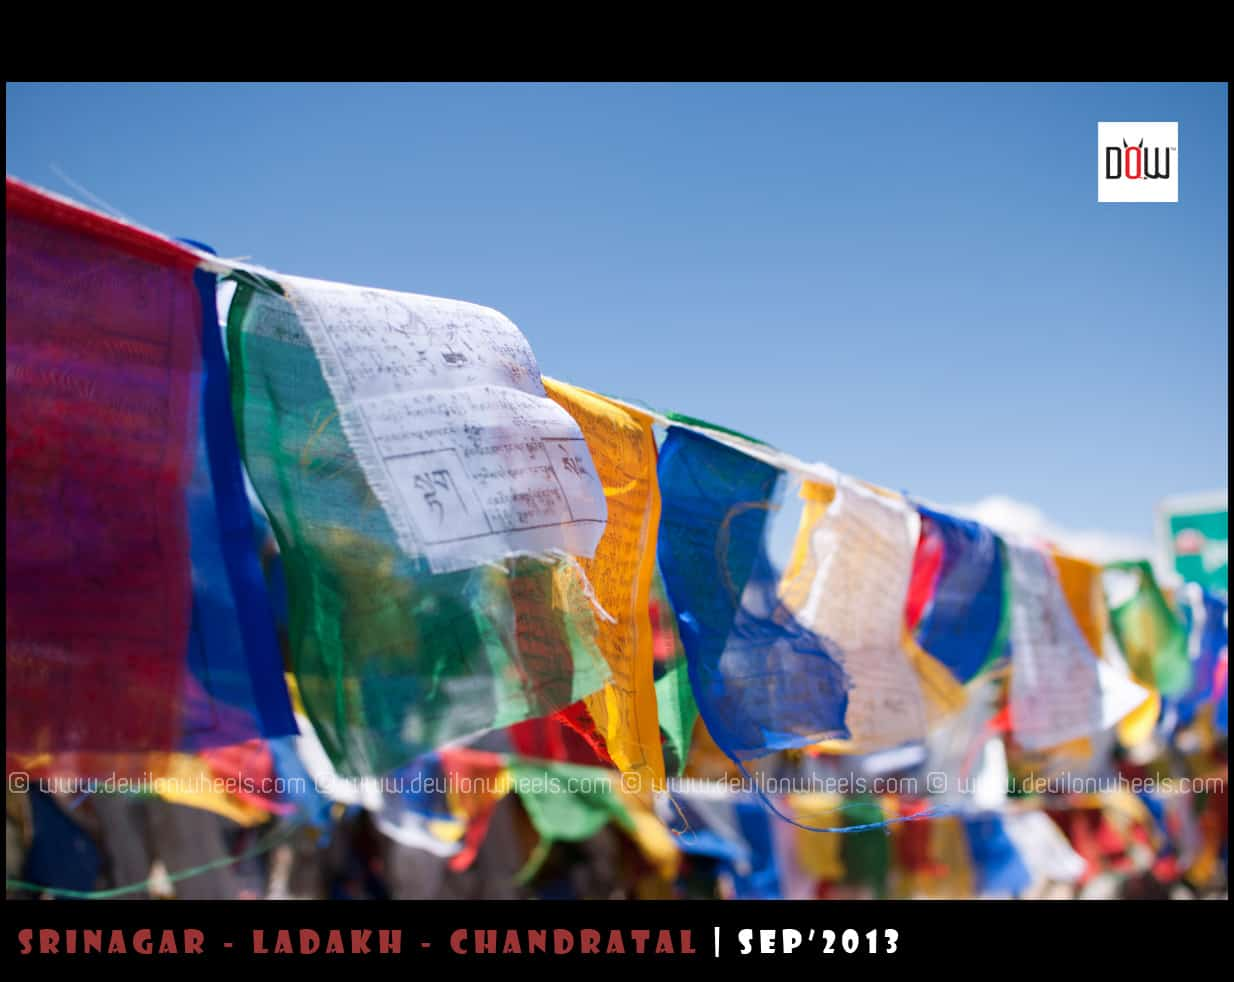 Prayer Flags at Passes... Showering Blessings with the Wind